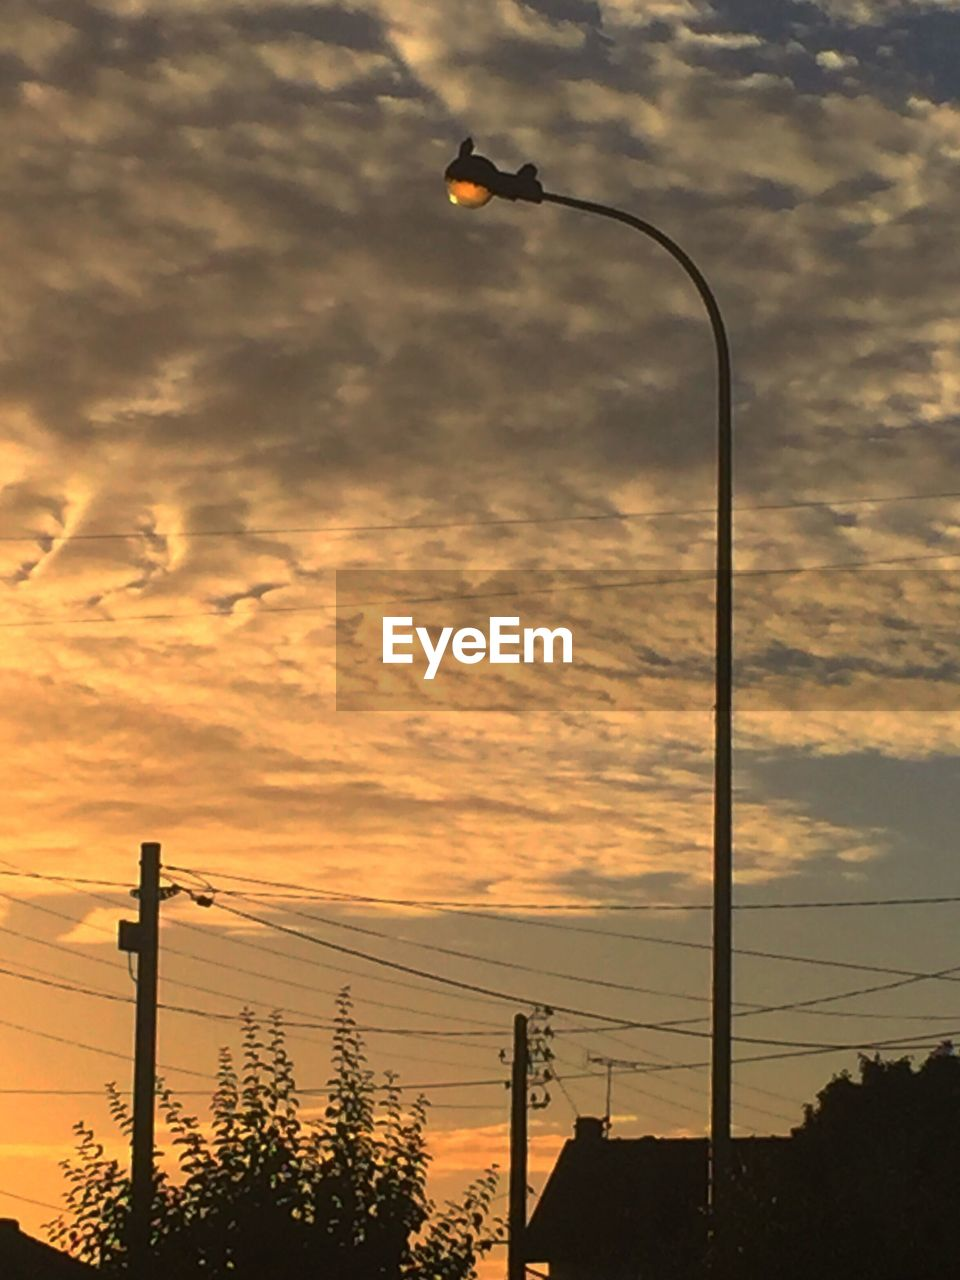 sunset, cloud - sky, sky, silhouette, street light, low angle view, built structure, nature, architecture, outdoors, tree, no people, beauty in nature, building exterior, electricity pylon, day